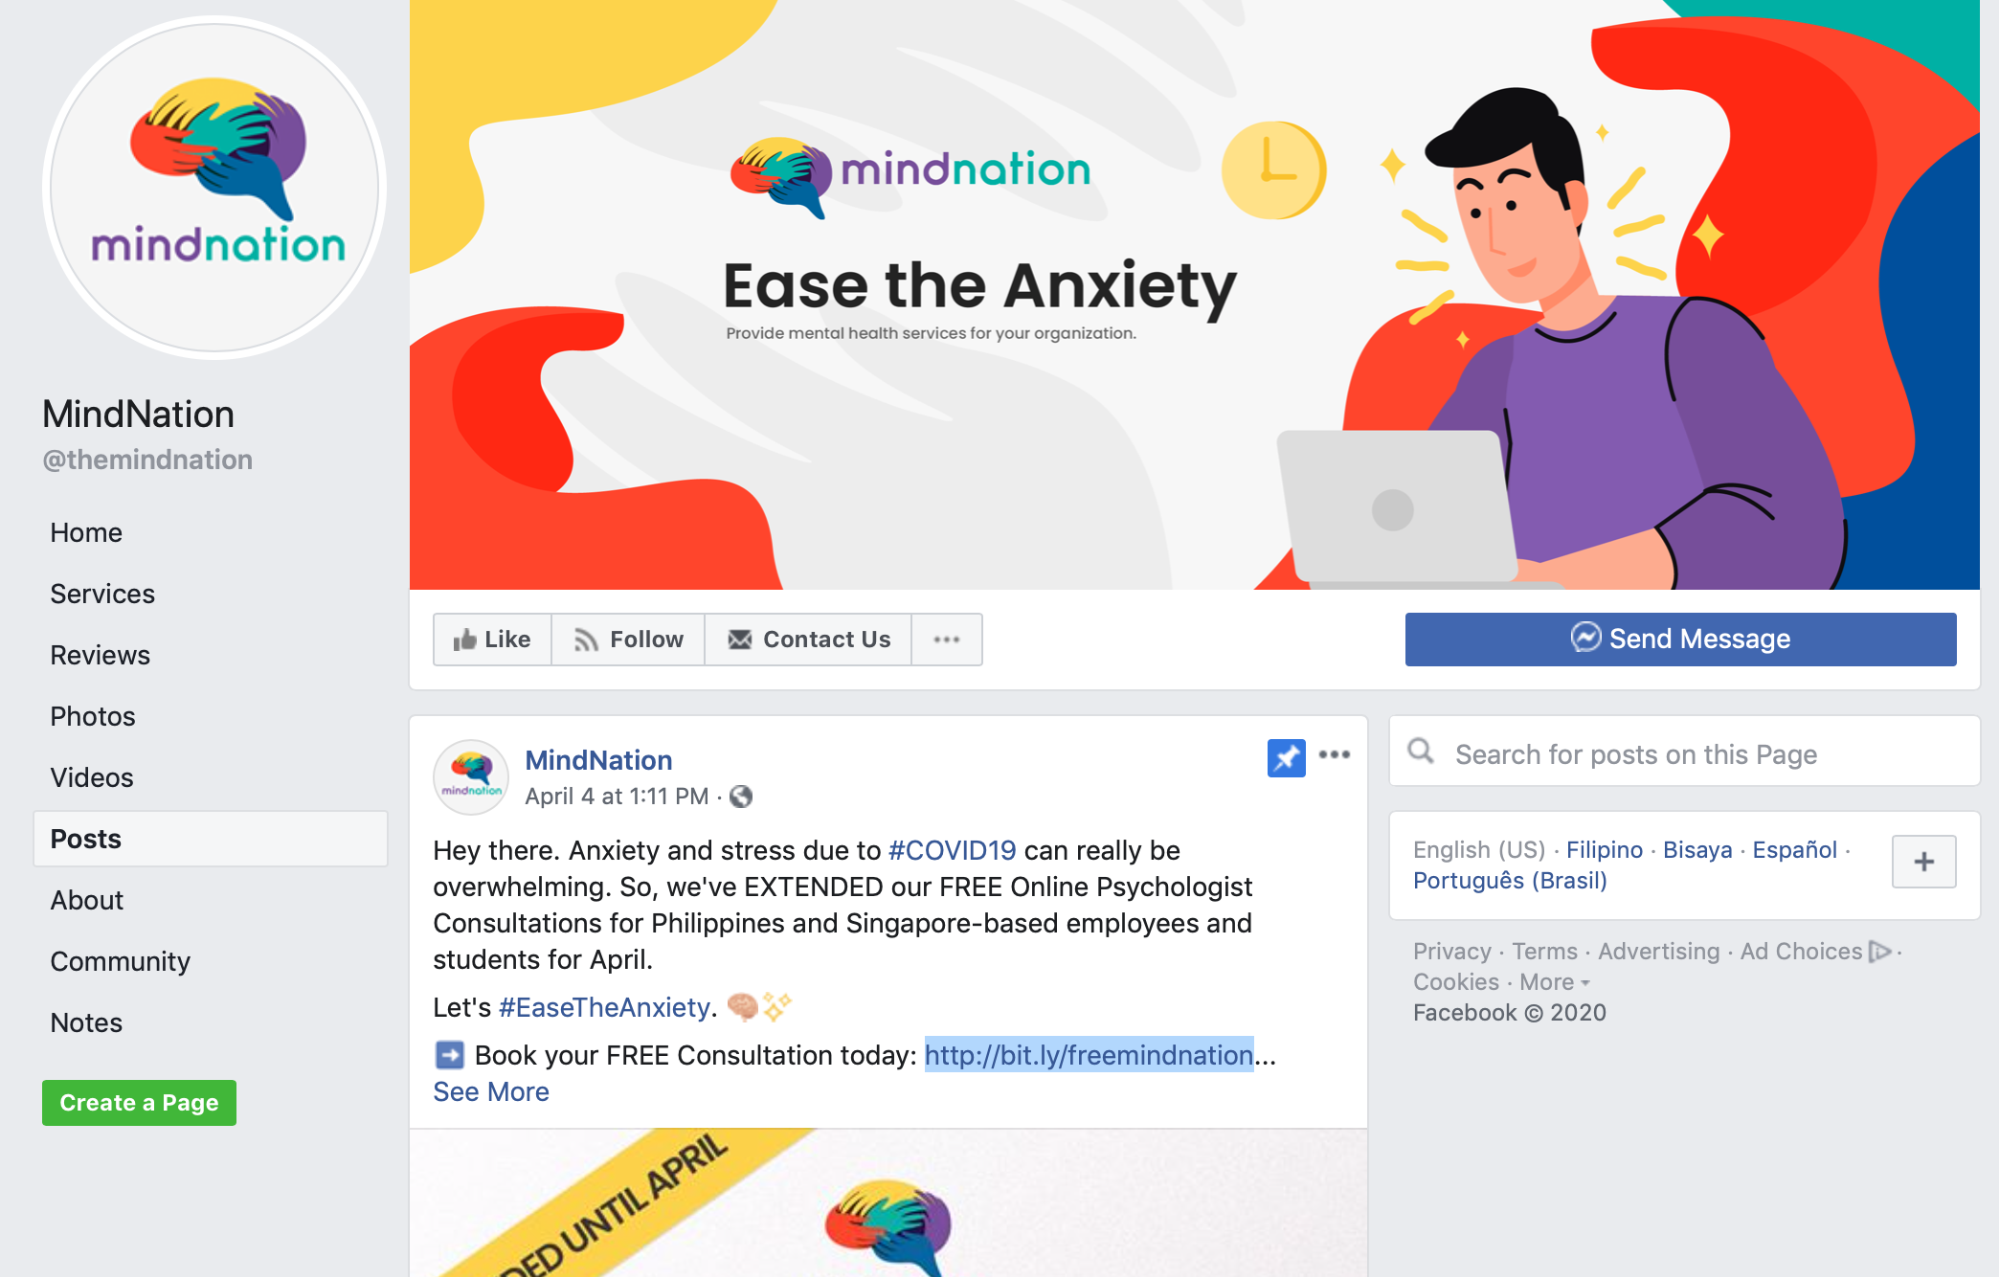 MindNation's Facebook page